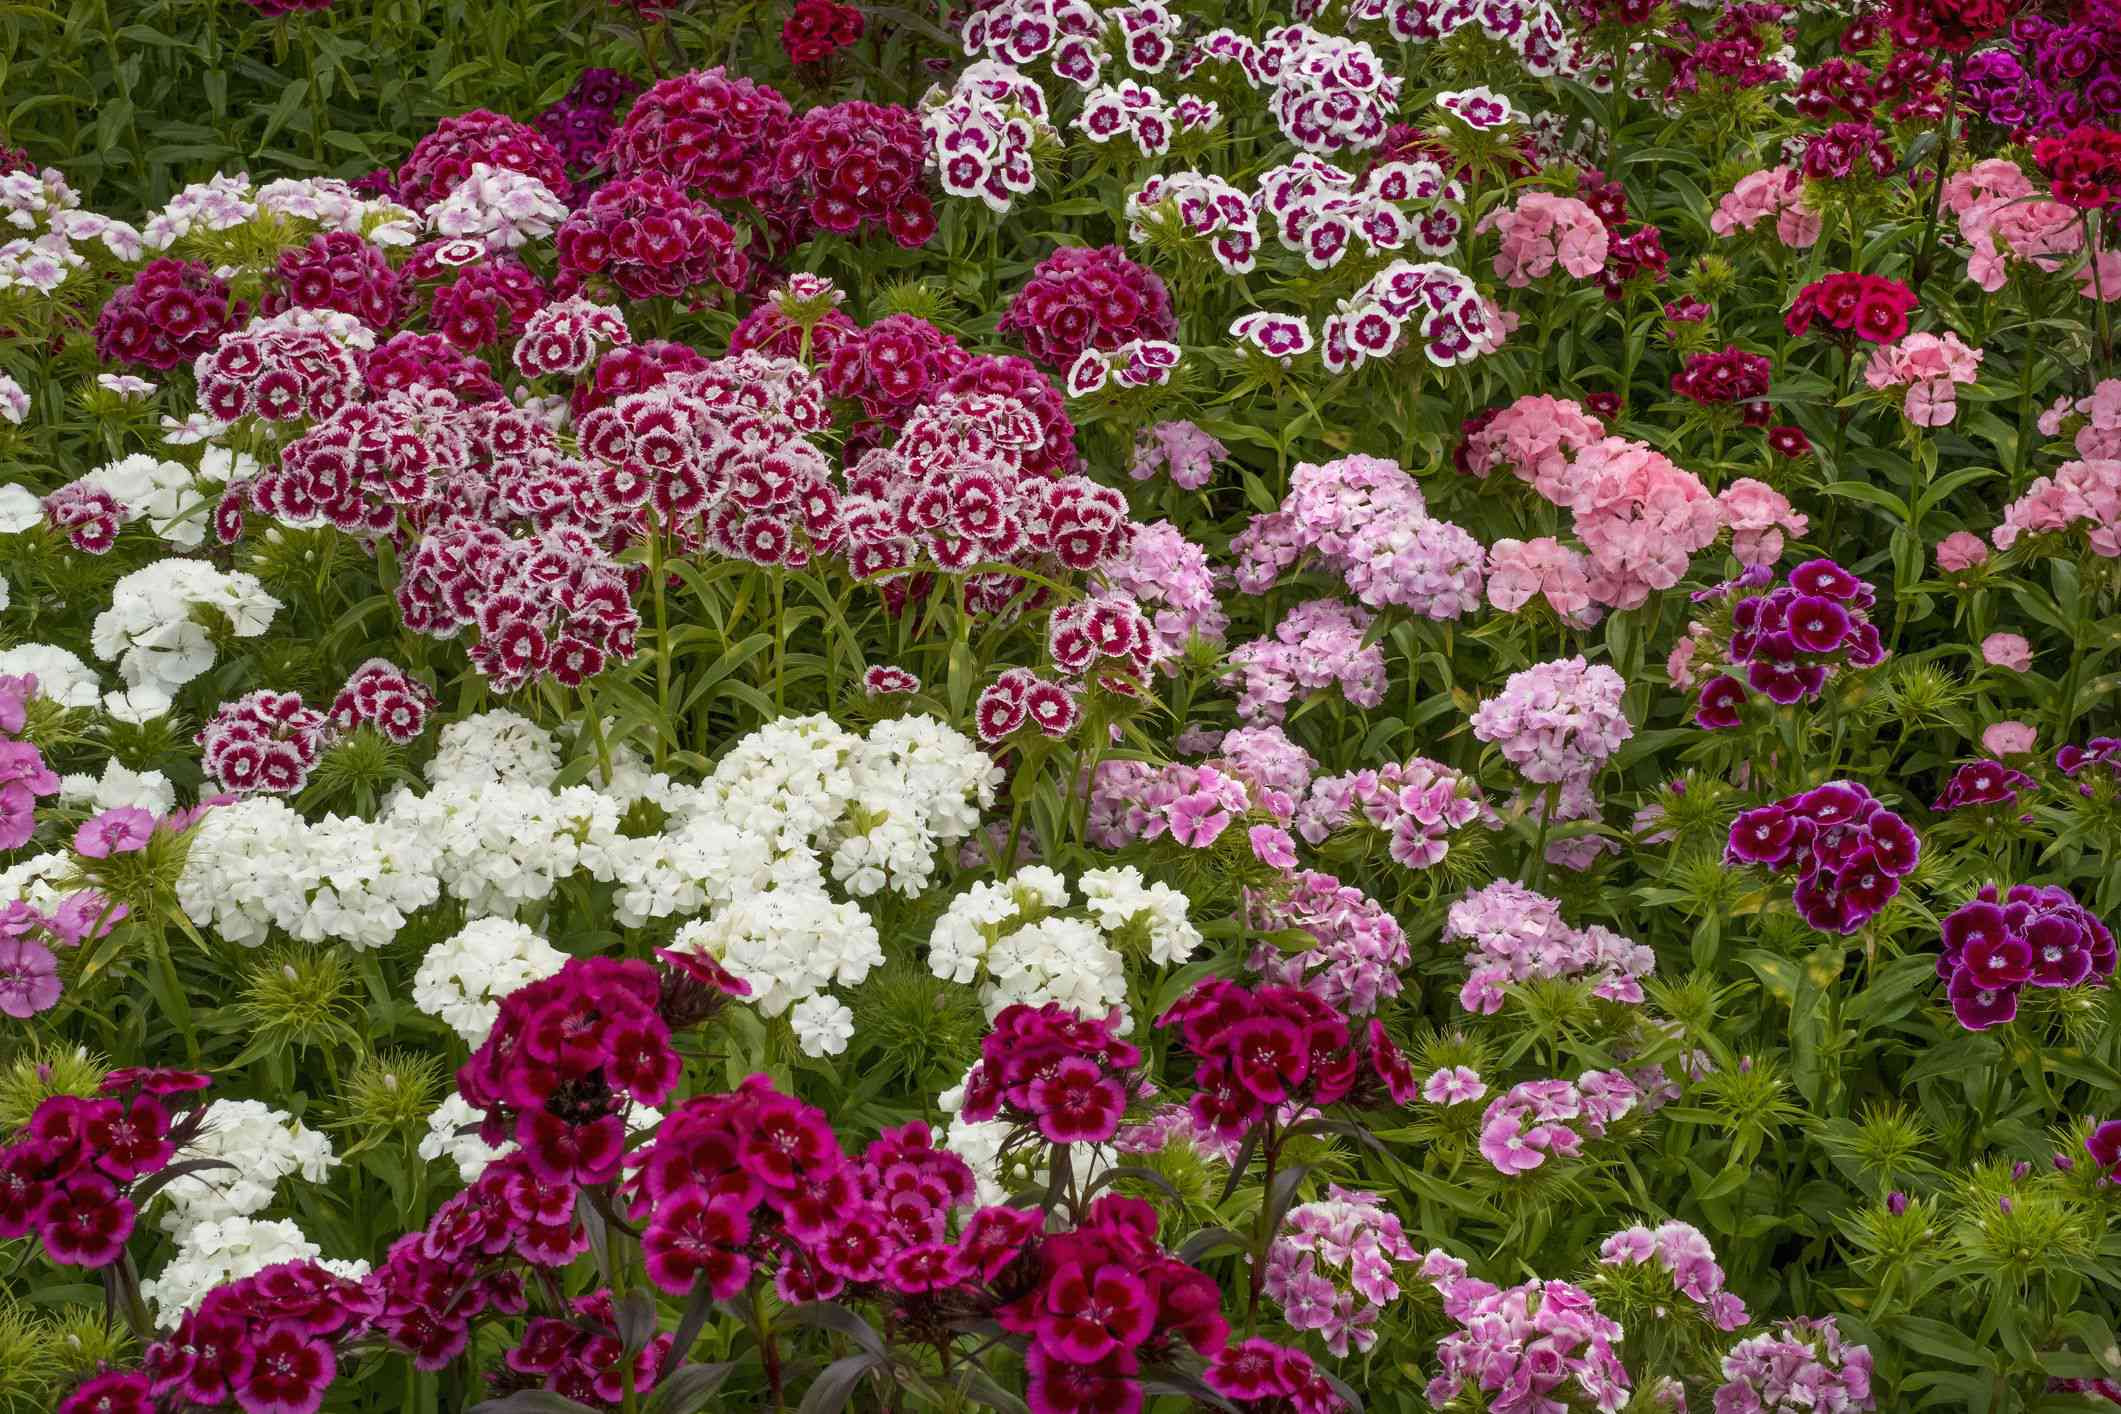 cluster of dianthus flowers